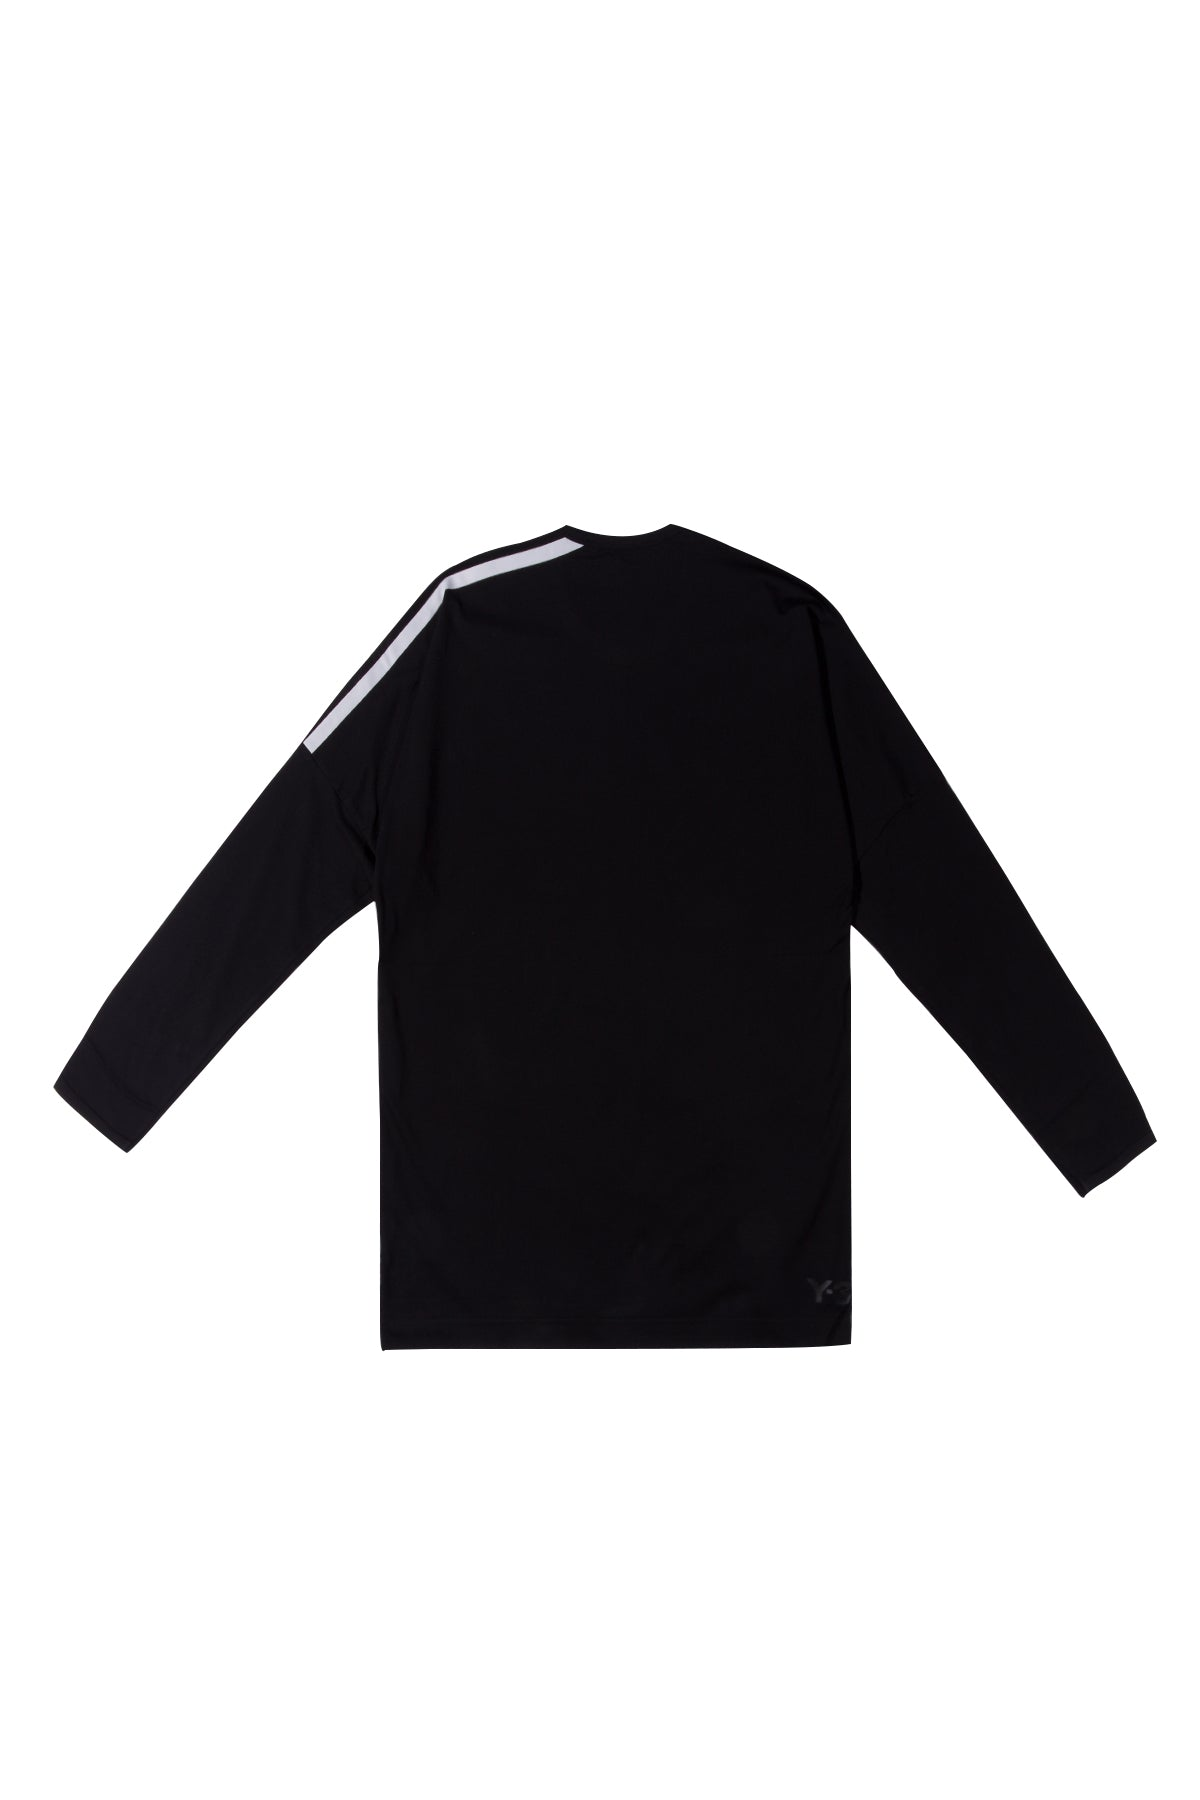 ADIDAS Y-3 Three Stripes LS T-Shirt